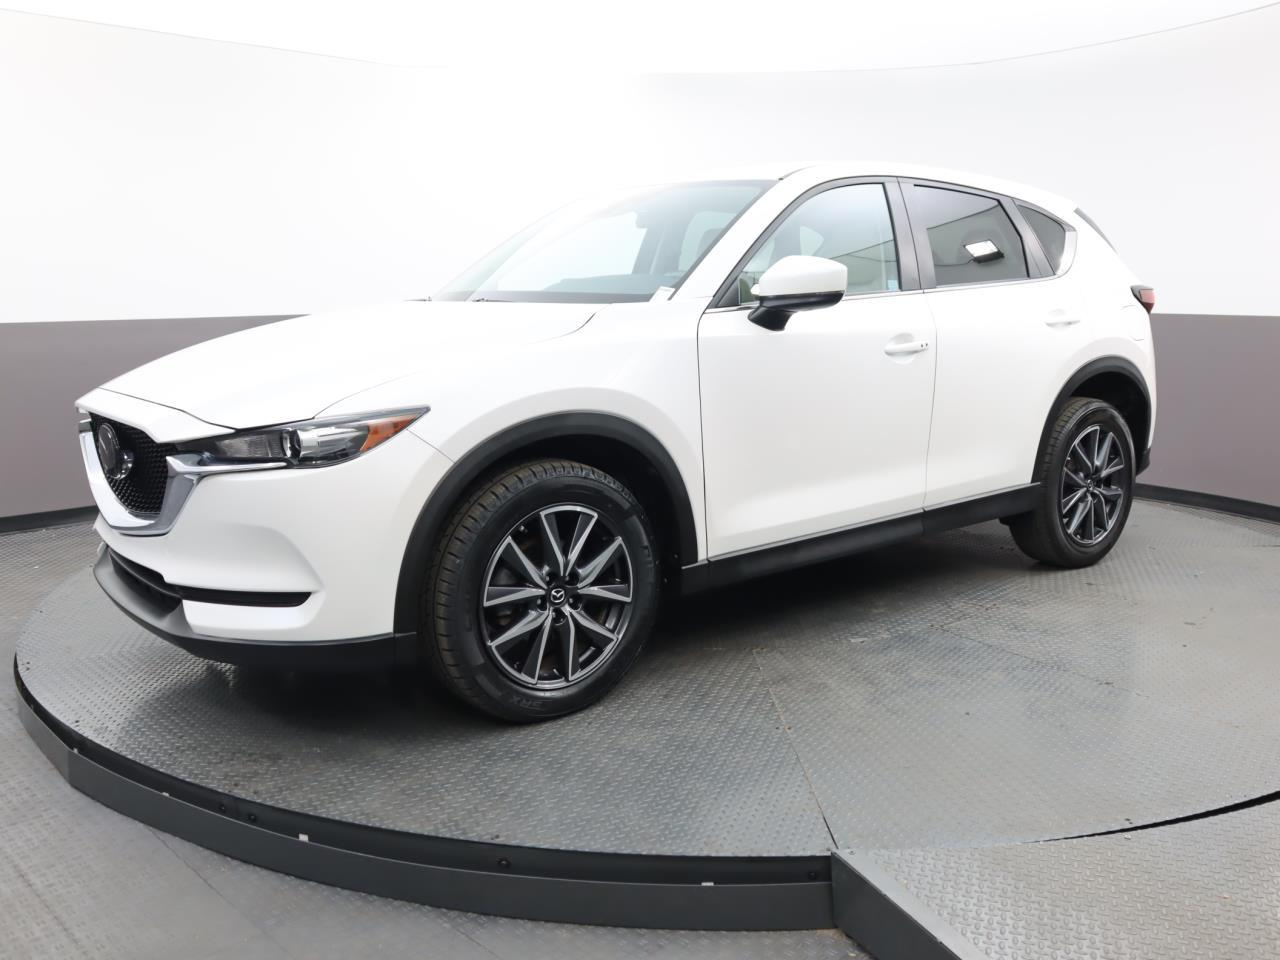 Used MAZDA CX-5 2018 MIAMI TOURING